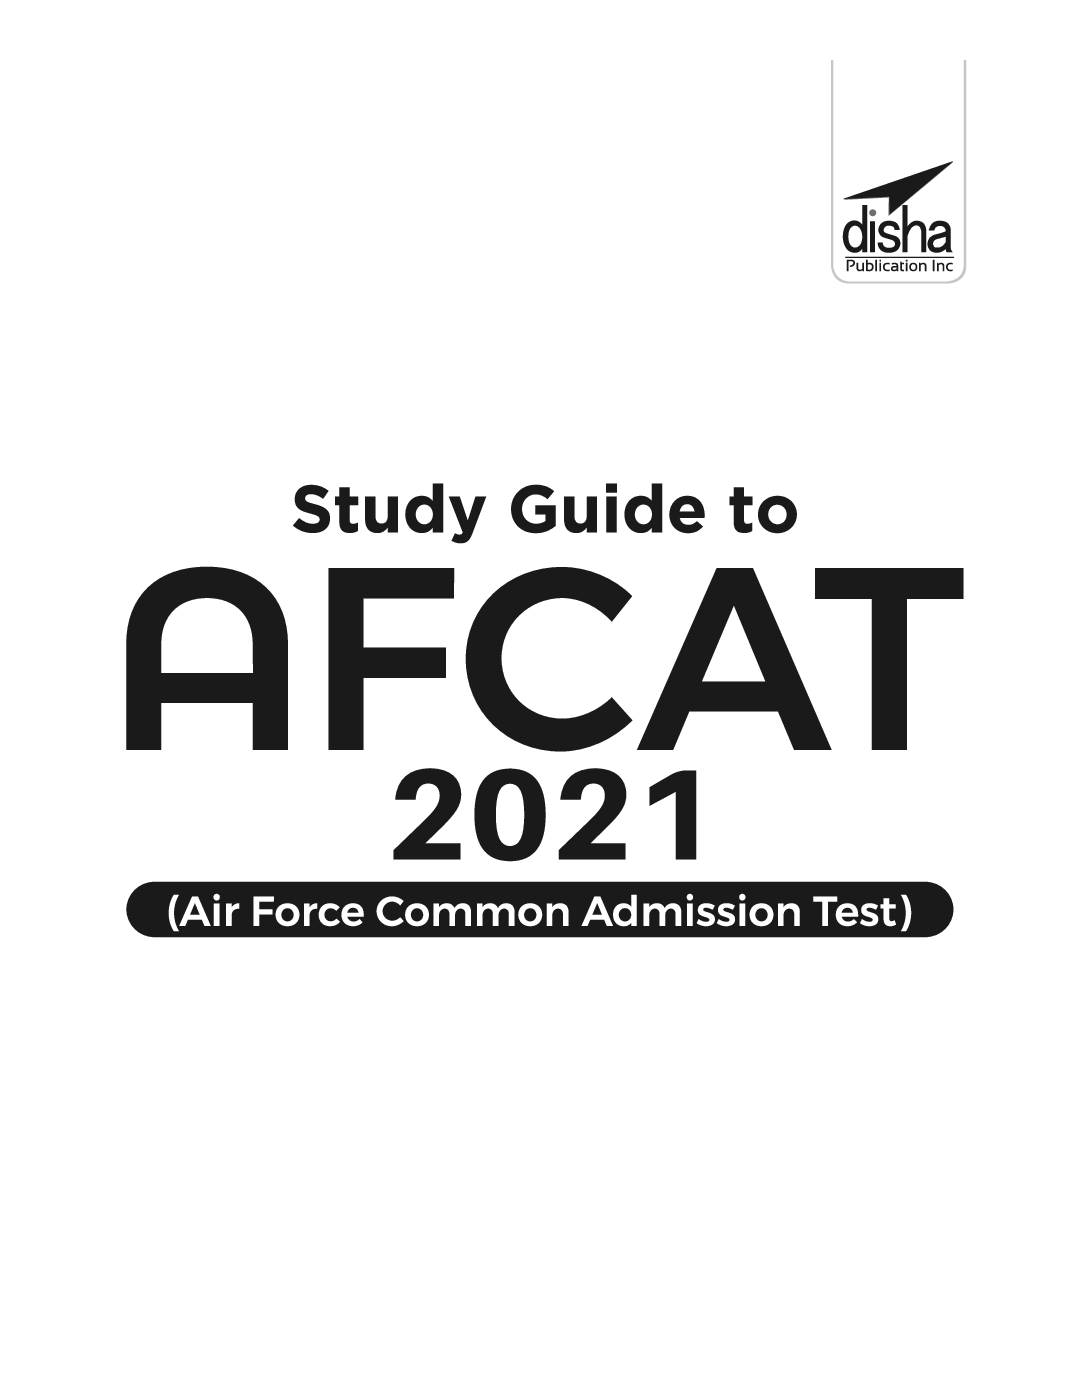 Download Study Guide to AFCAT 2021 (Air Force Common